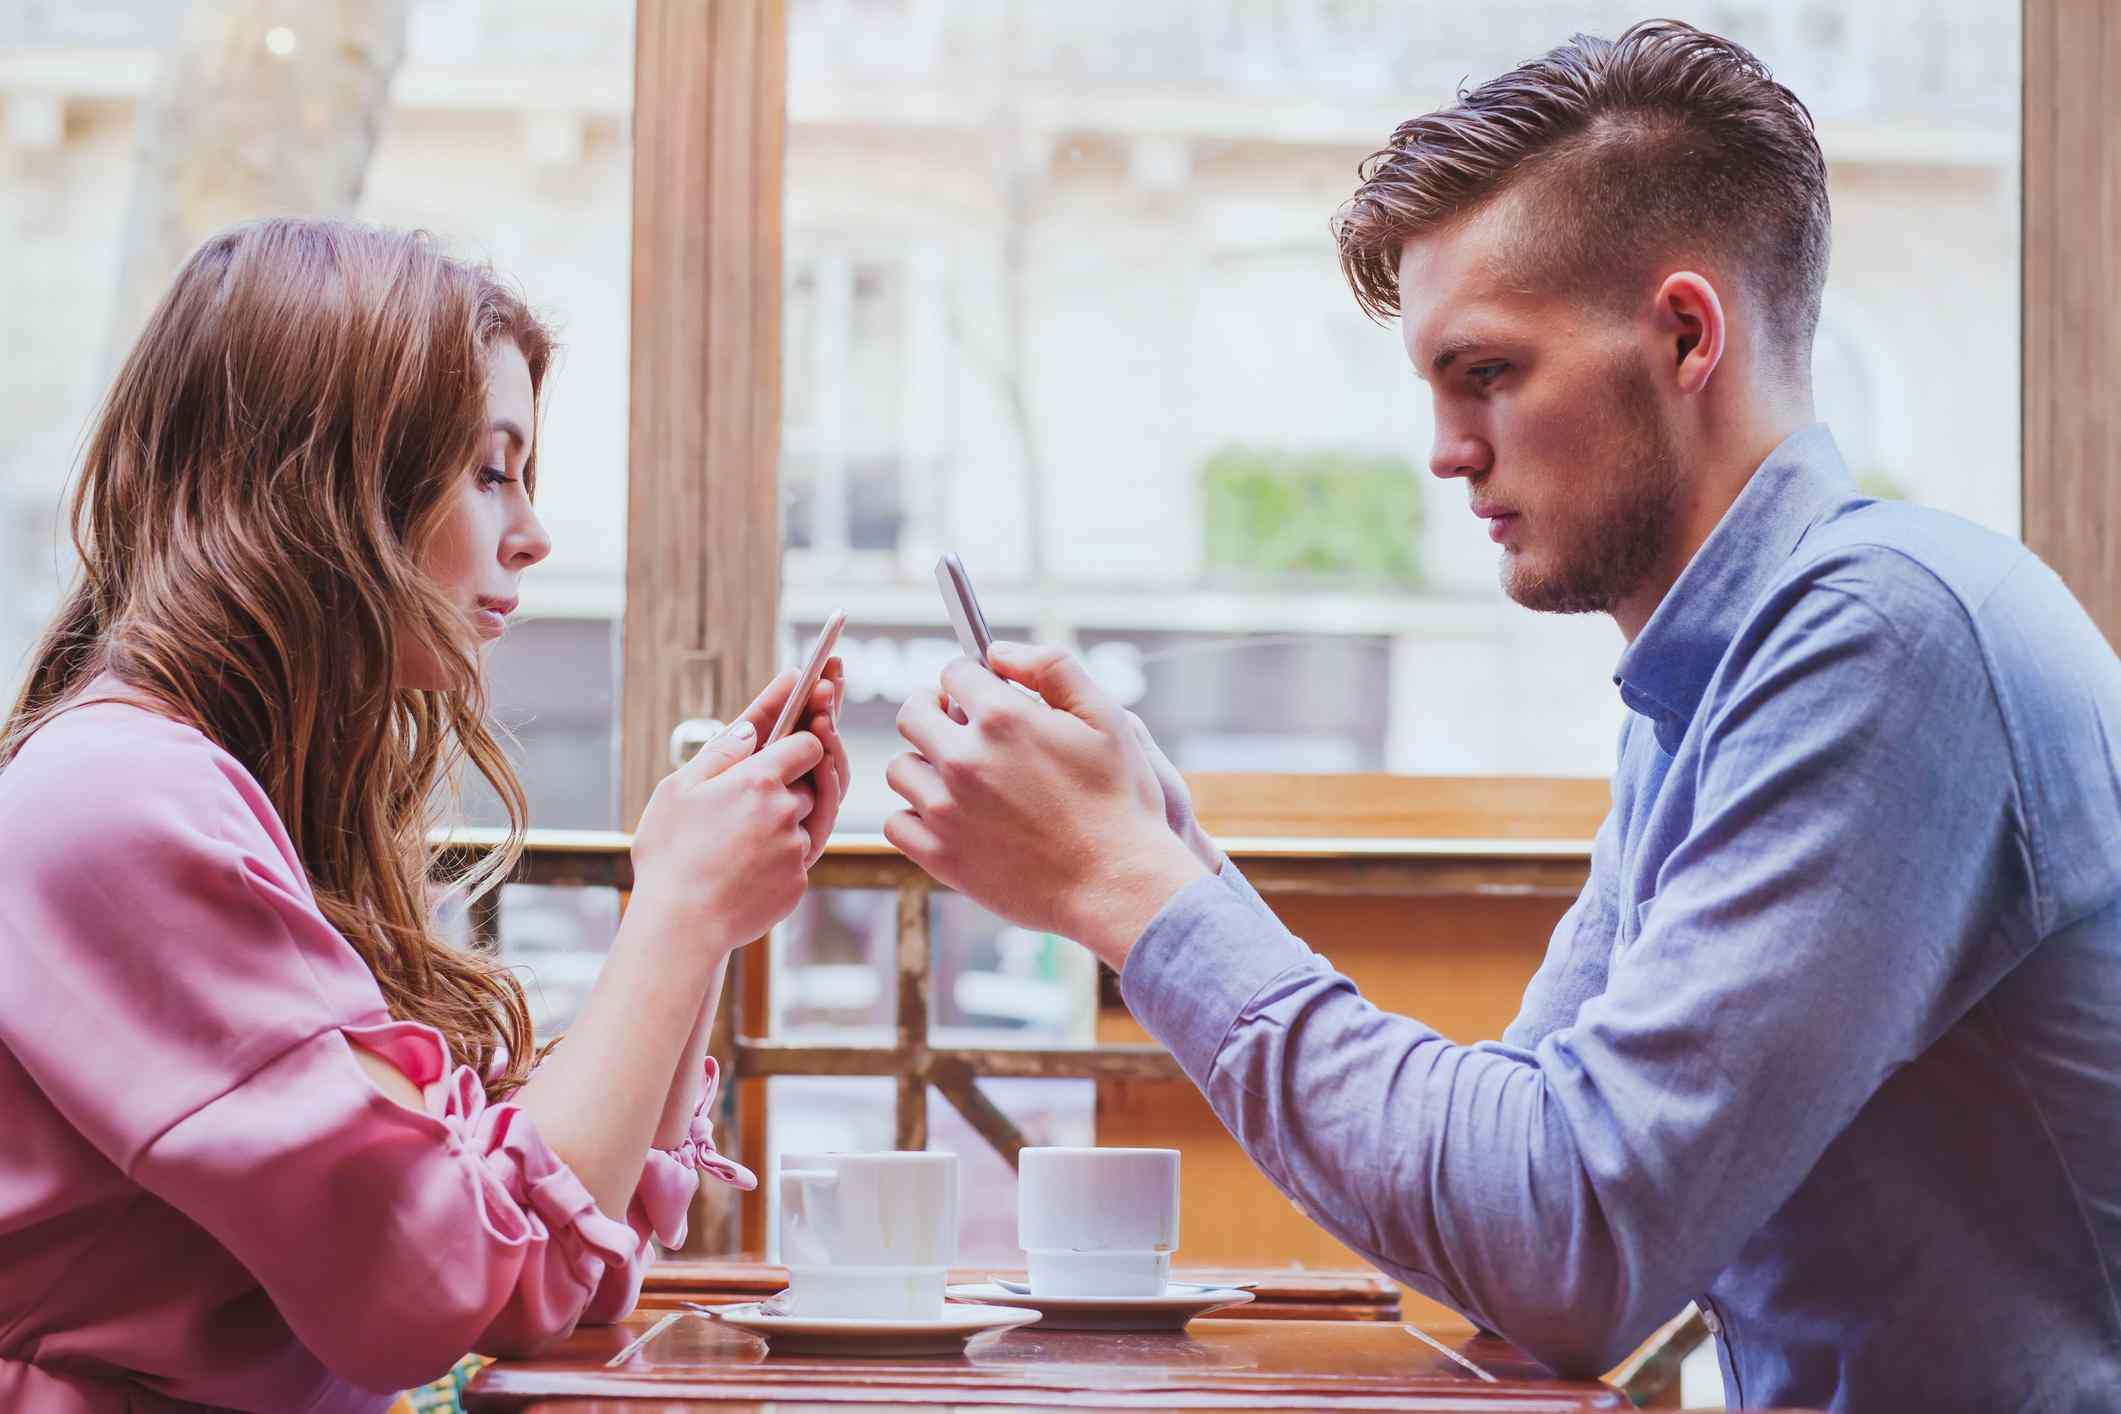 A couple at a restaurant ignoring each other while they use their phones.